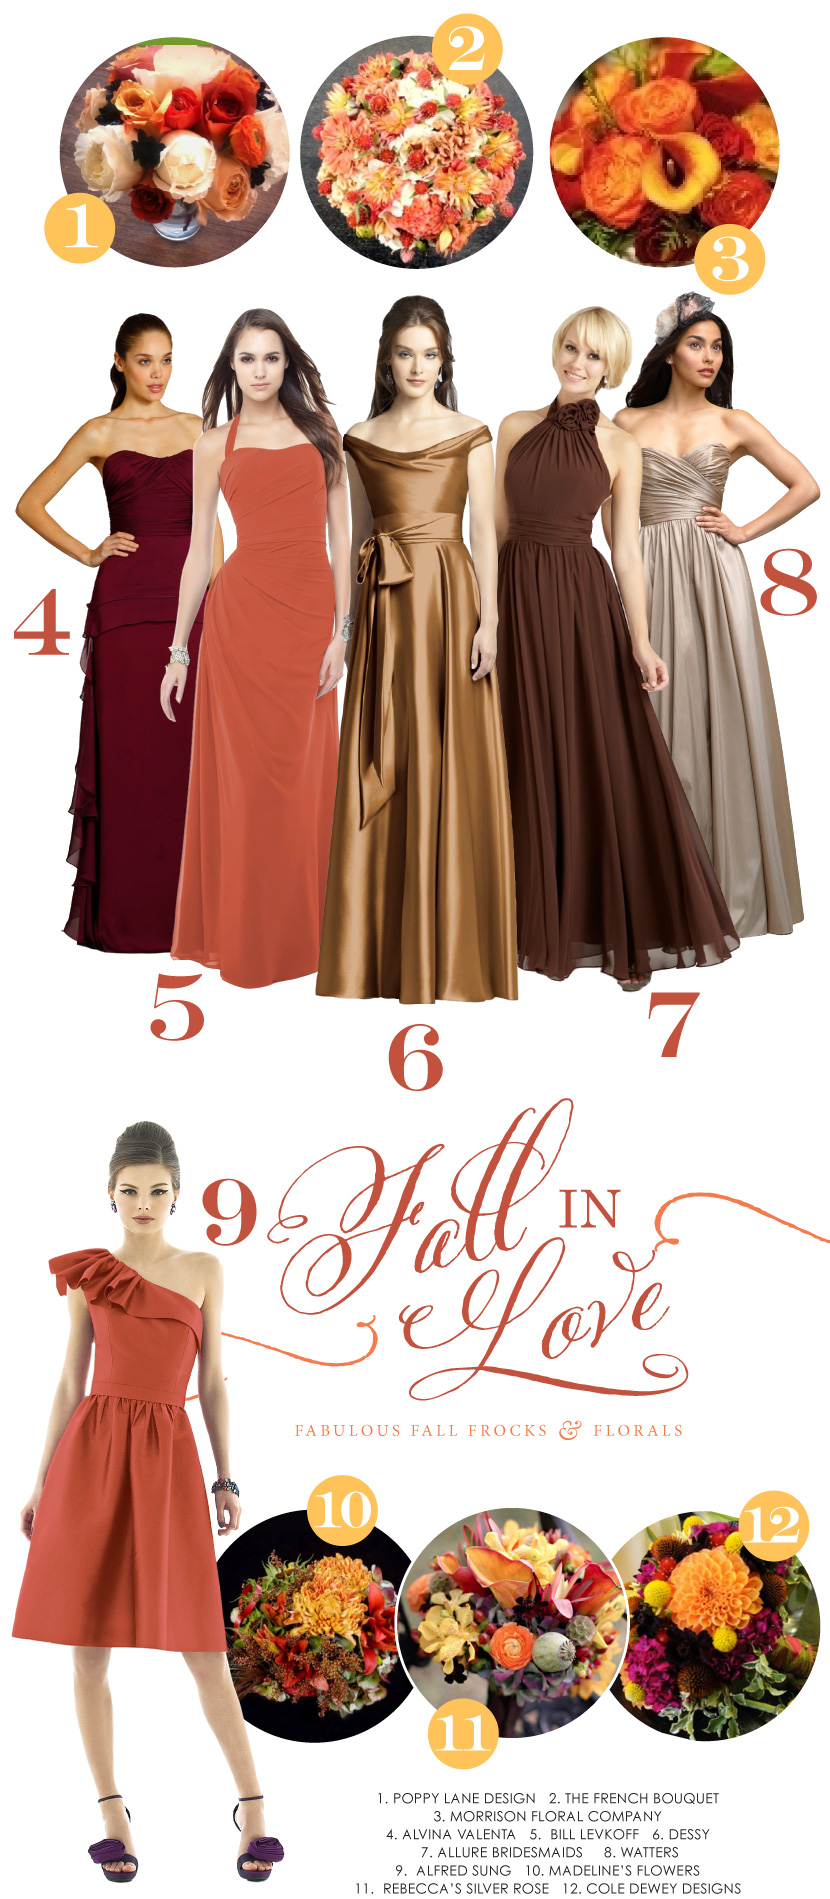 Fall in Love - Bridesmaid Dresses and Wedding Bouquets